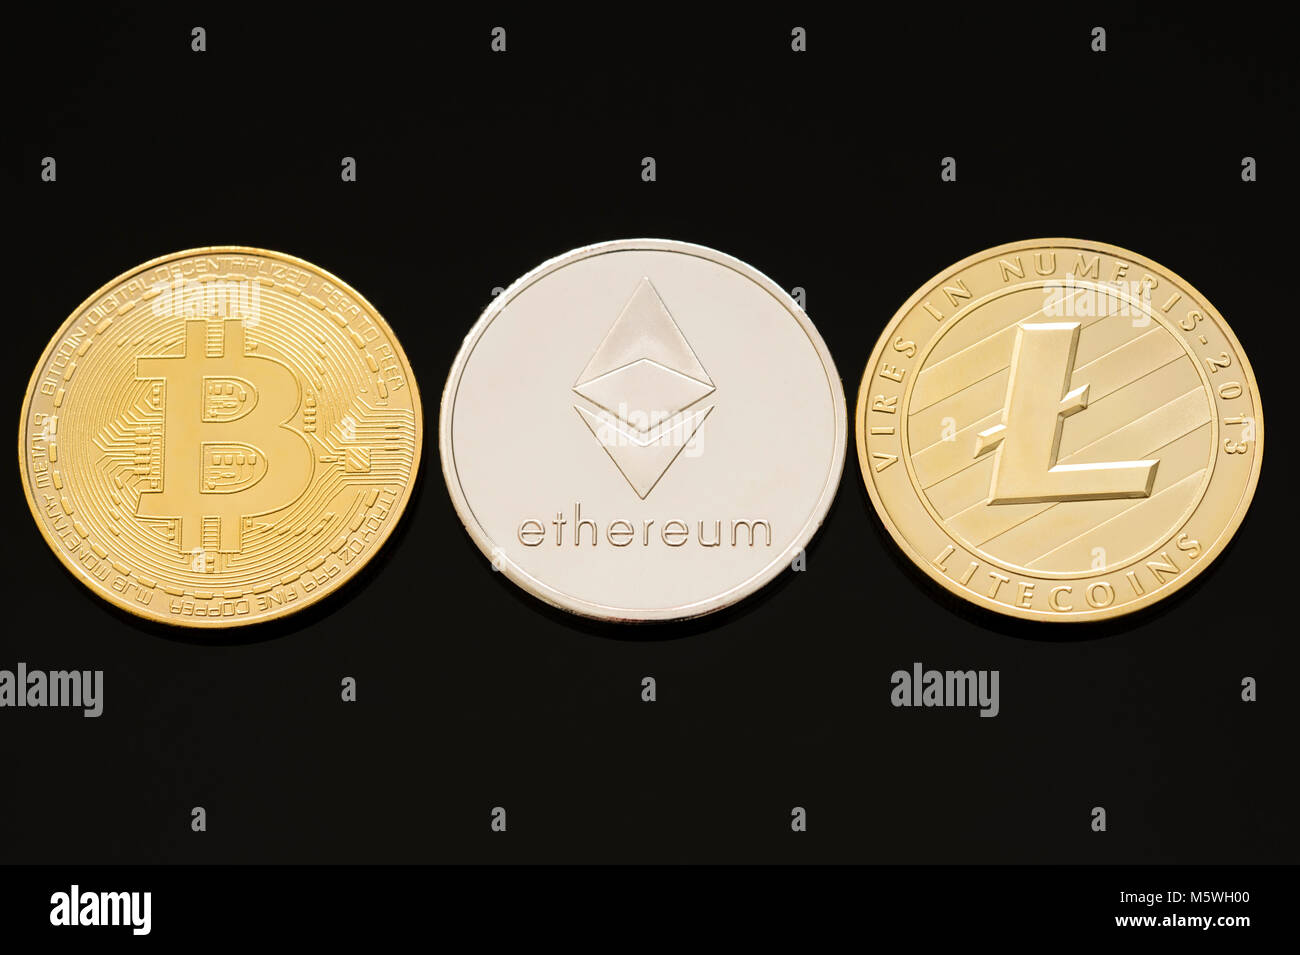 A collection of the three most popular digital or cryptocurrencies. Bitcoin, Ethereum (Ether) & Litecoin on - Stock Image